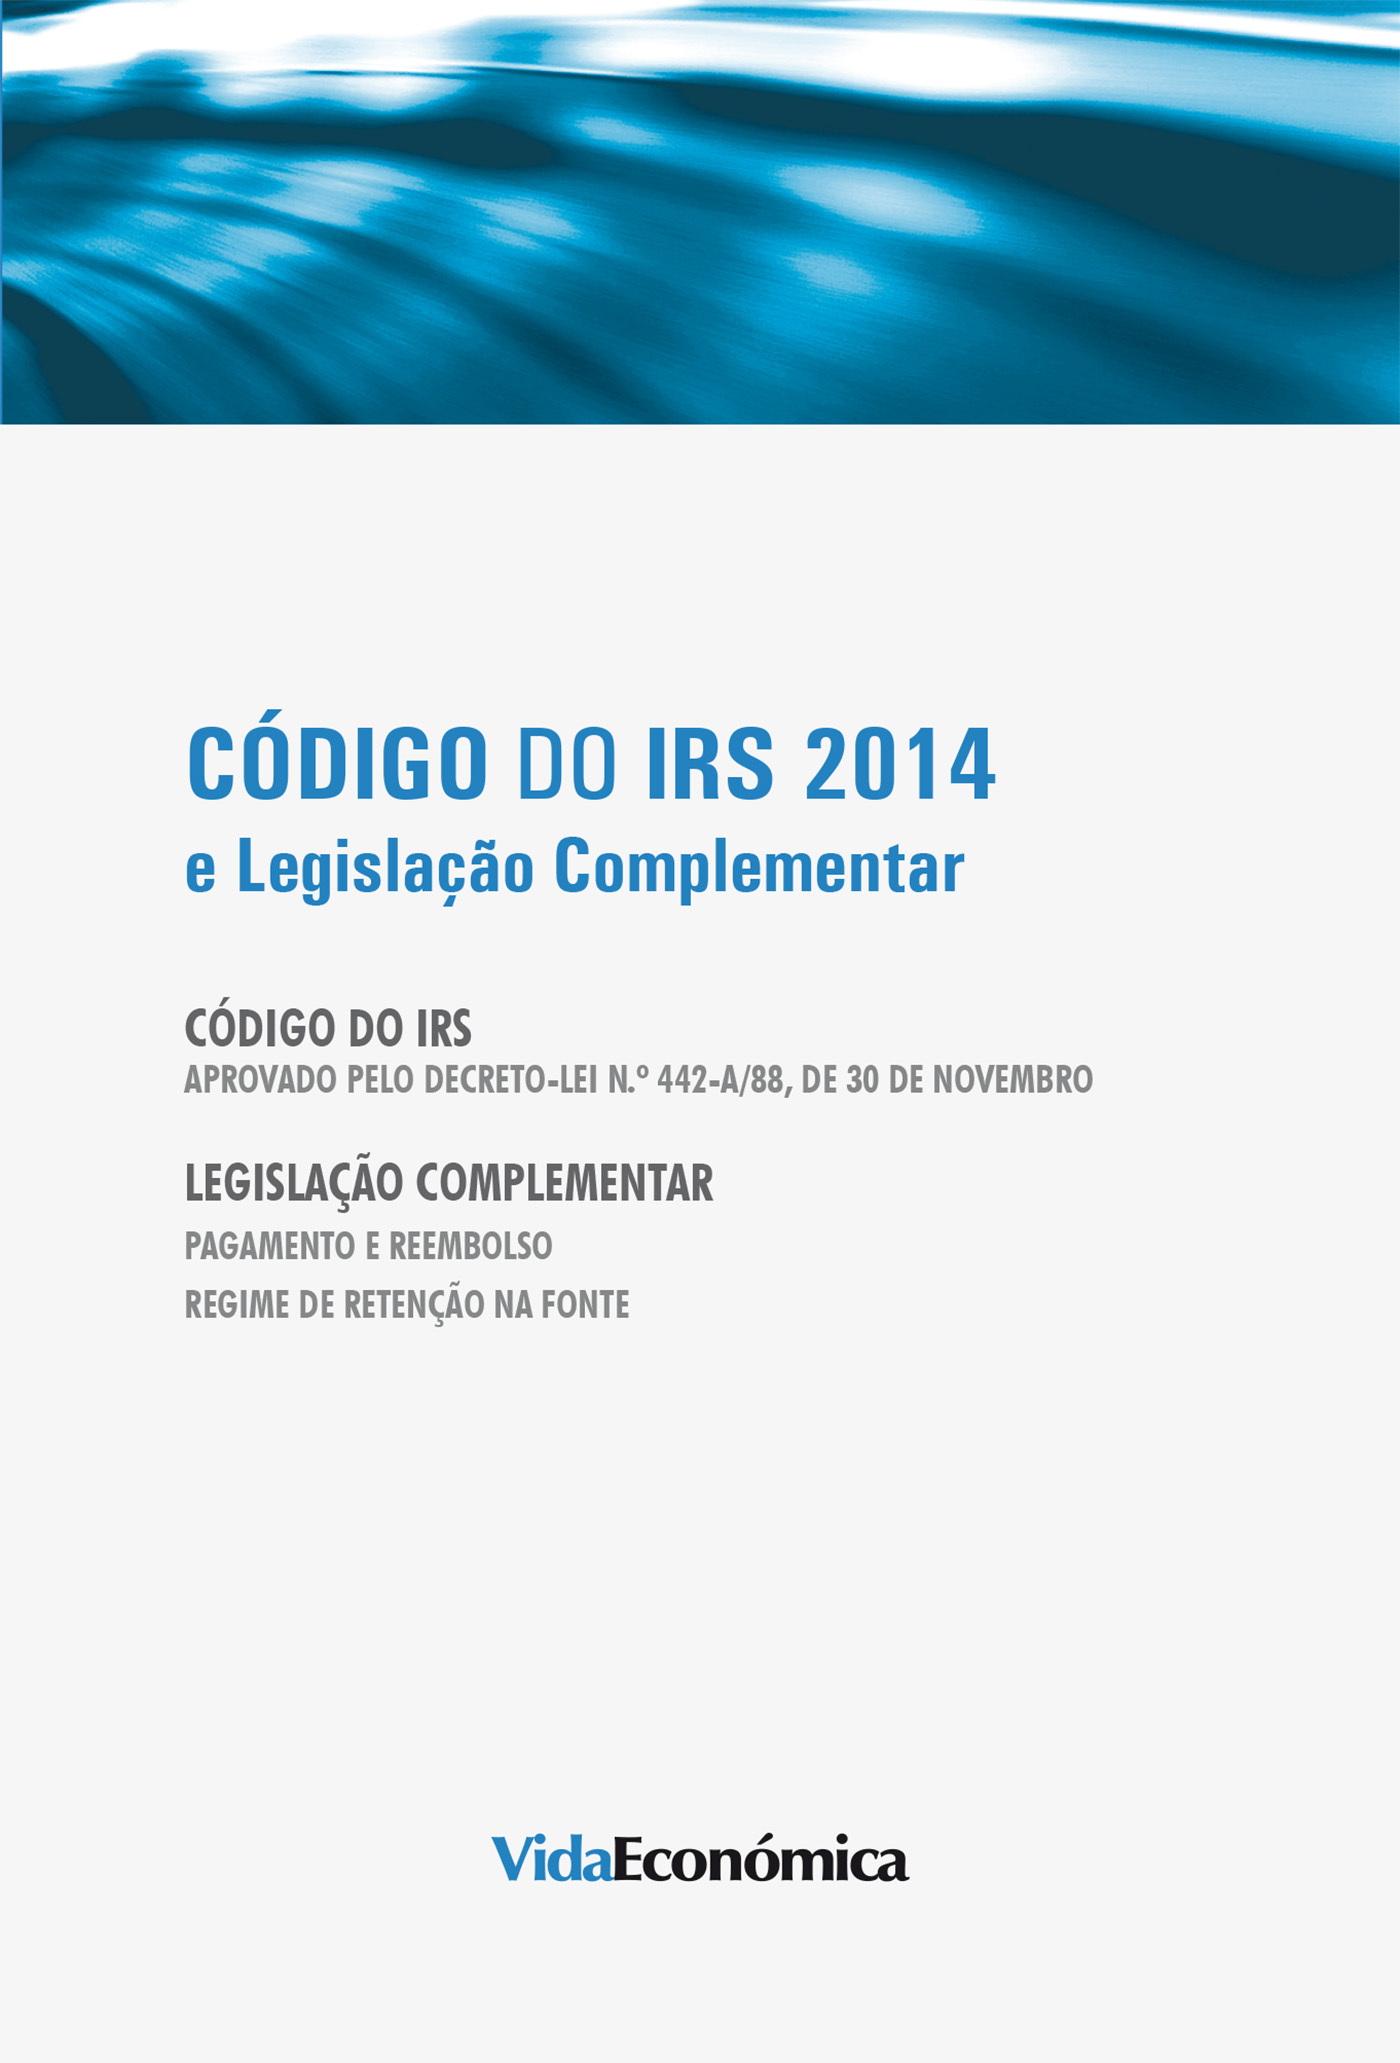 Código do IRS 2014